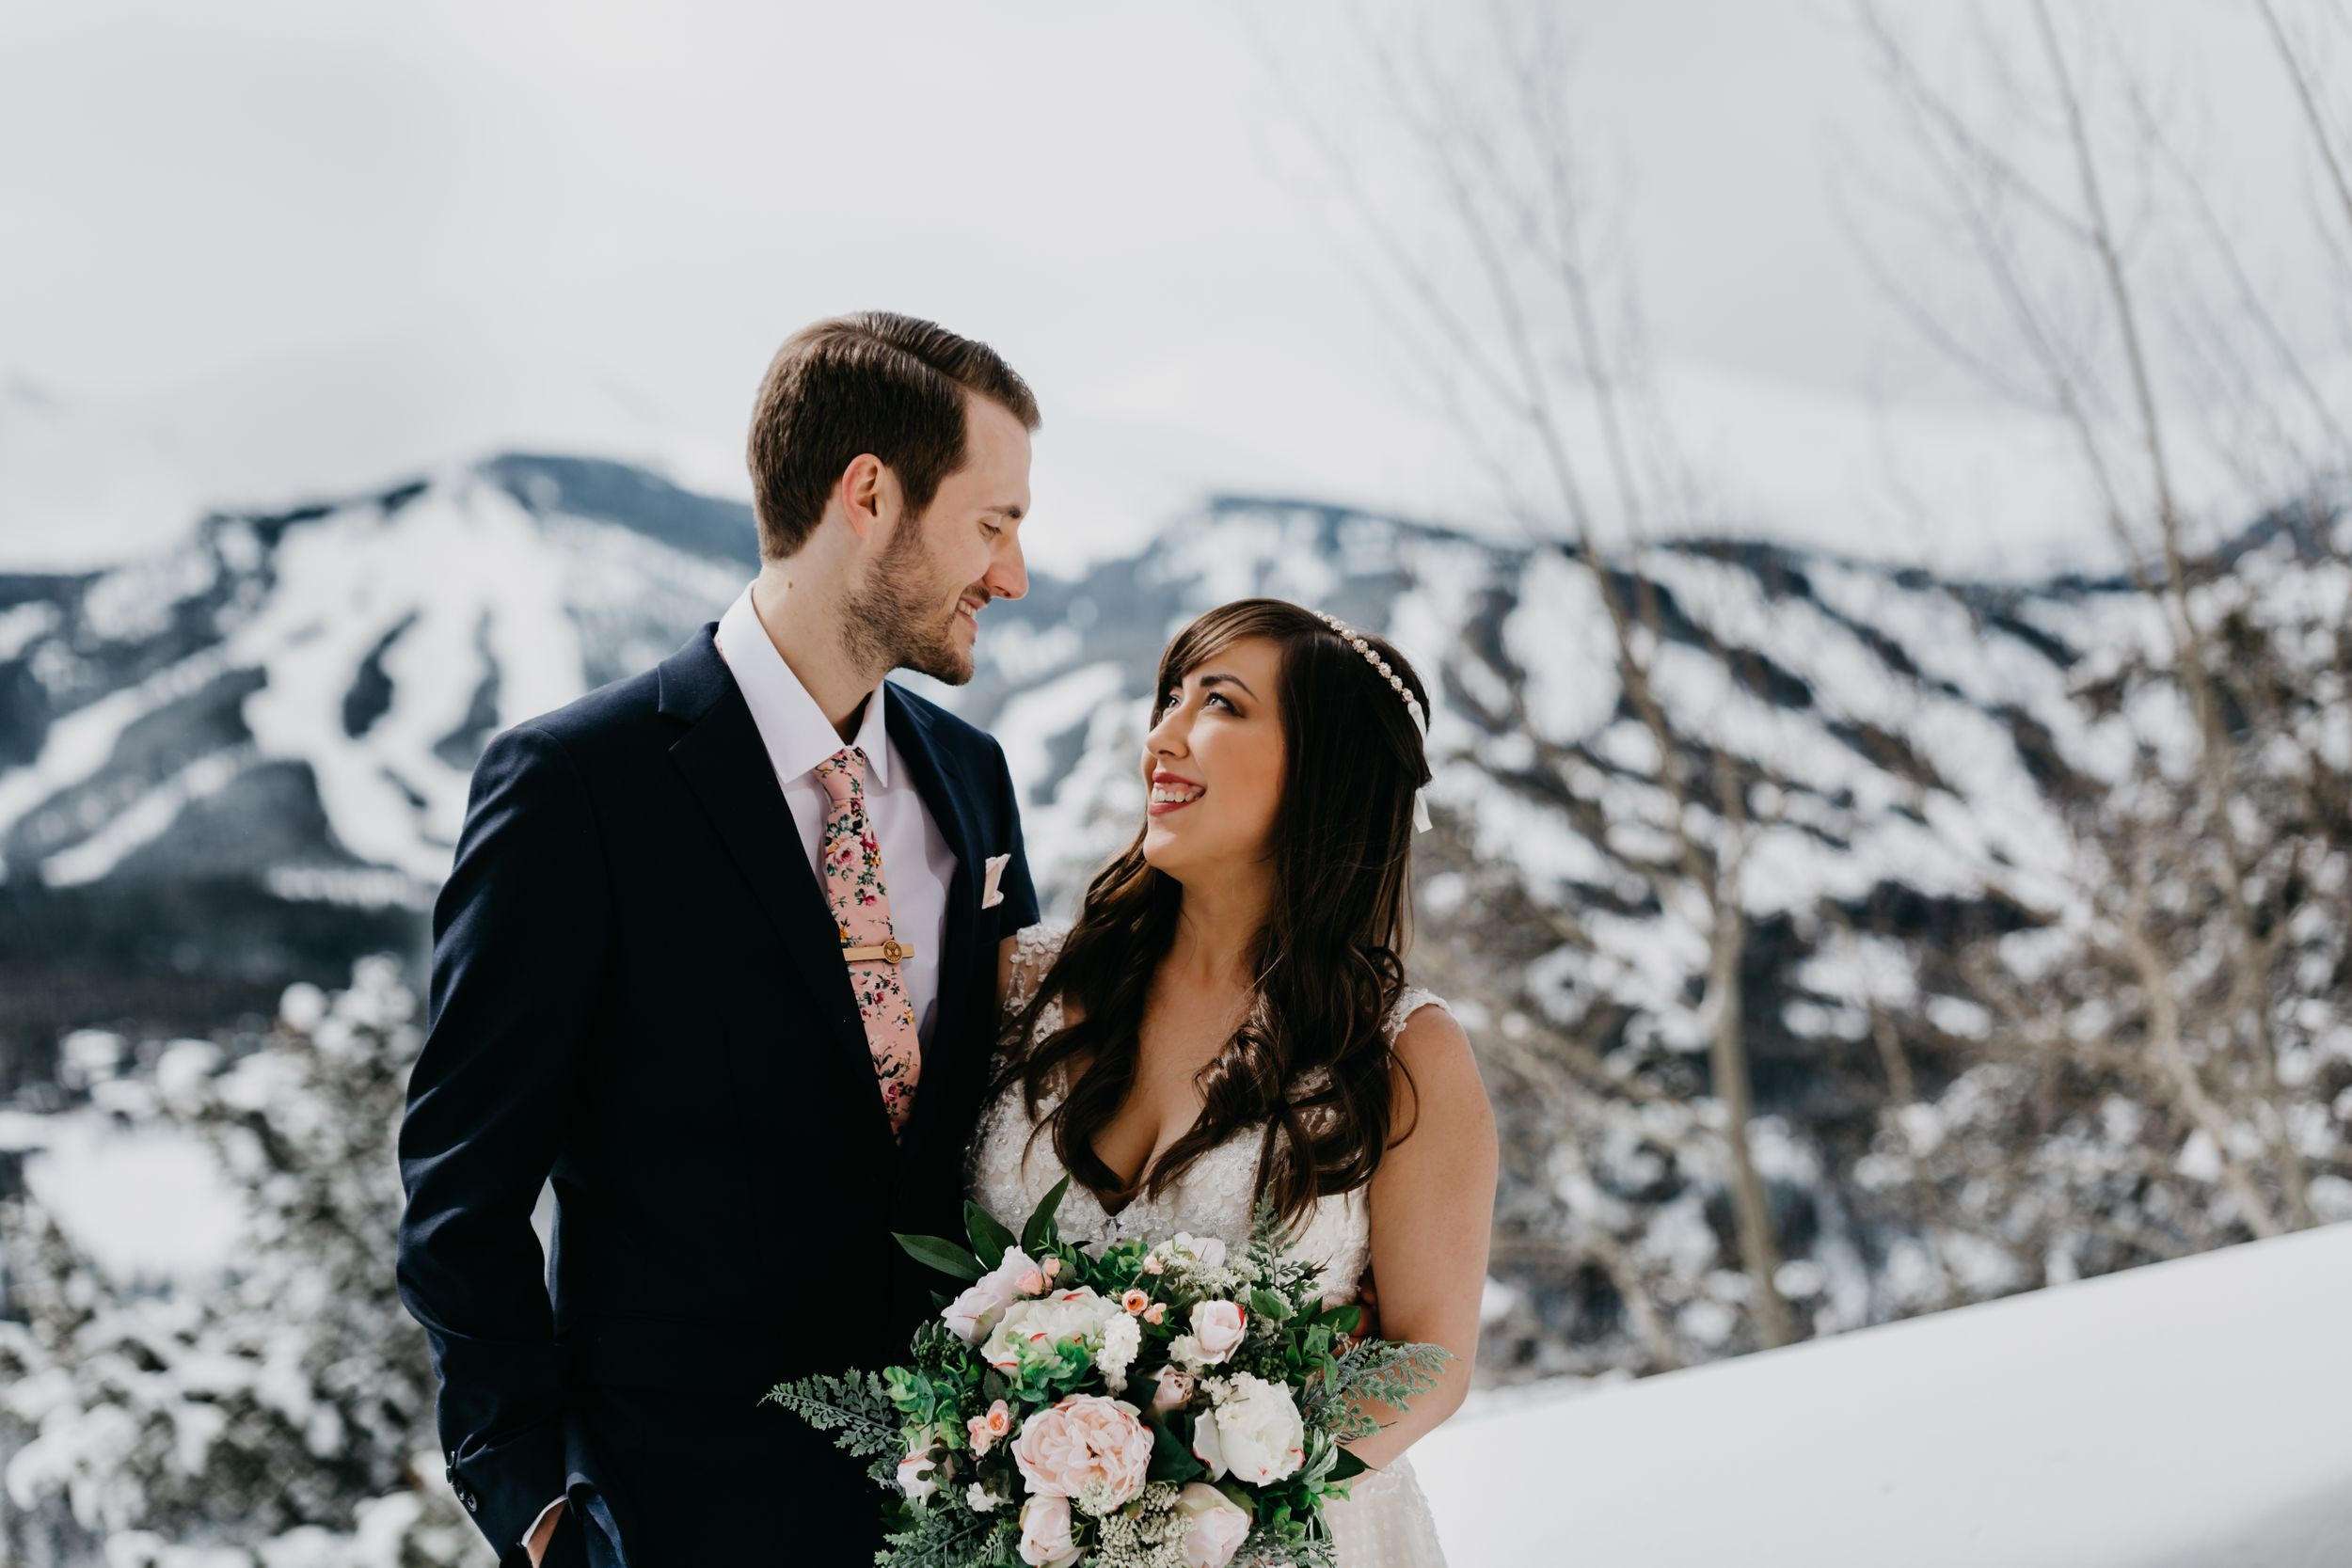 bridal portraits Breckenridge, winter wedding, Colorado wedding, classic wedding, fun, marvel, travel wedding